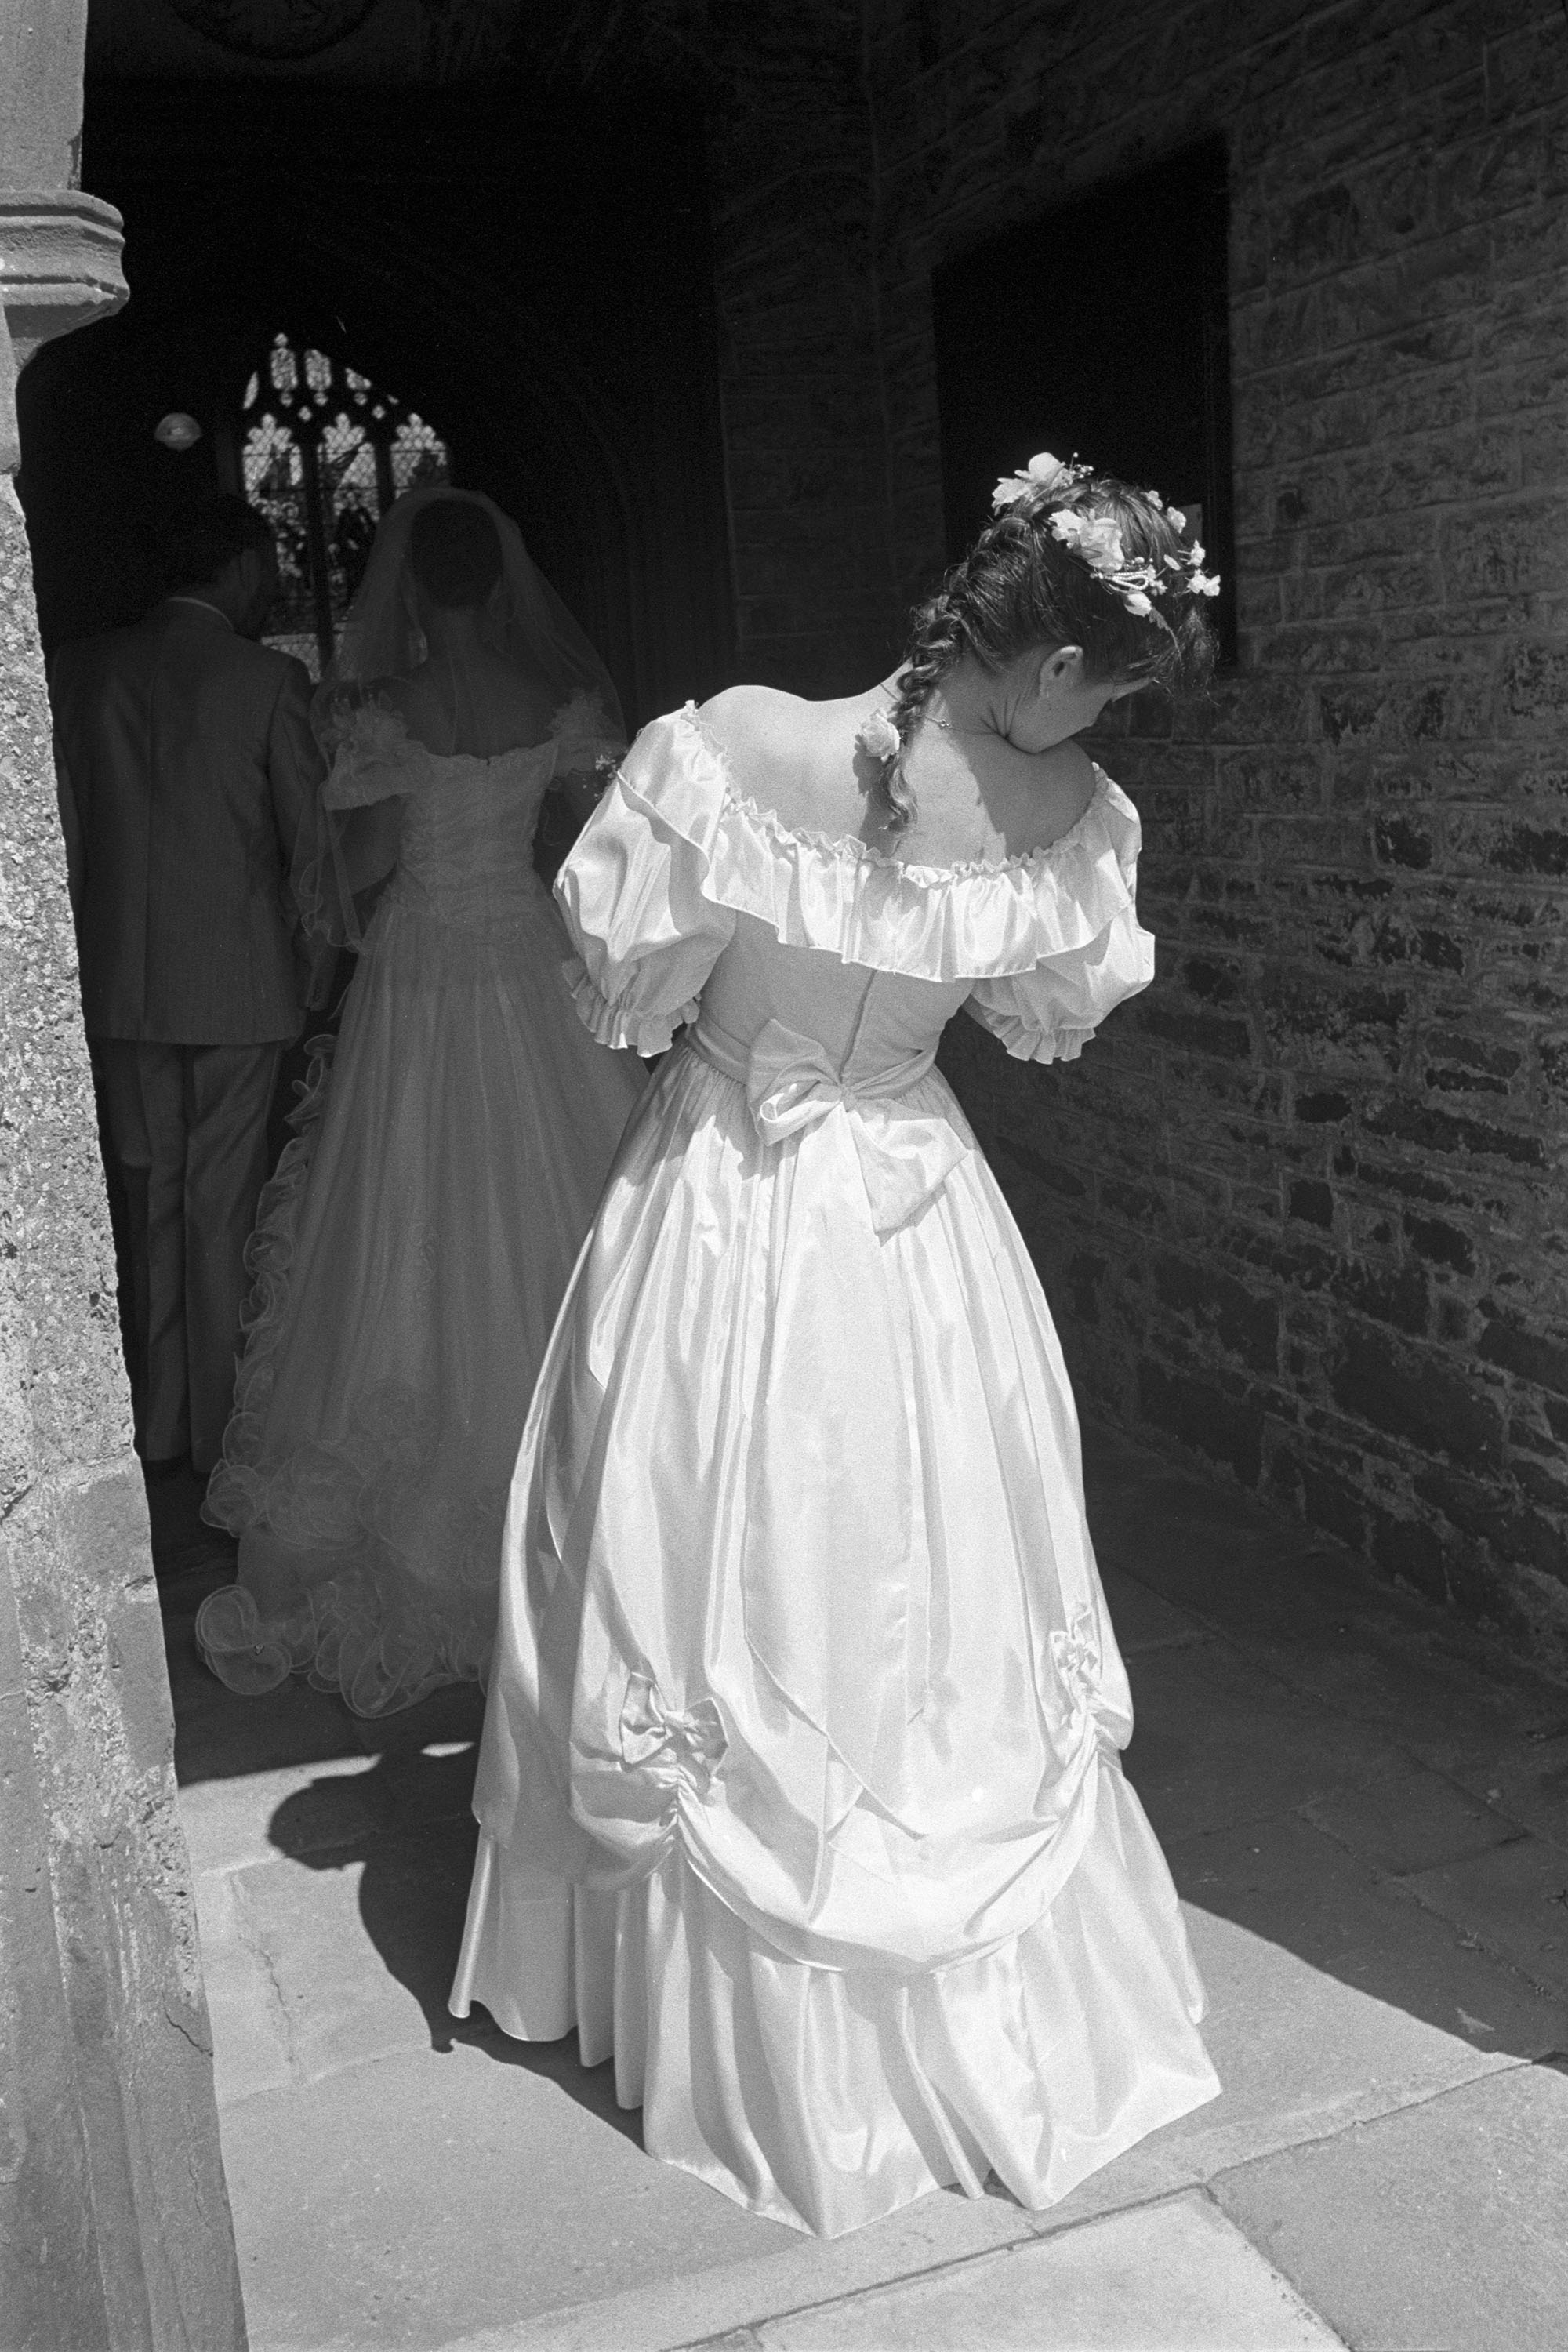 Wedding, bridesmaid about to enter church. <br /> [A bridesmaid entering Chulmleigh Church, for a wedding, behind the bride. A stained glass window can be seen inside the church, from the doorway.]